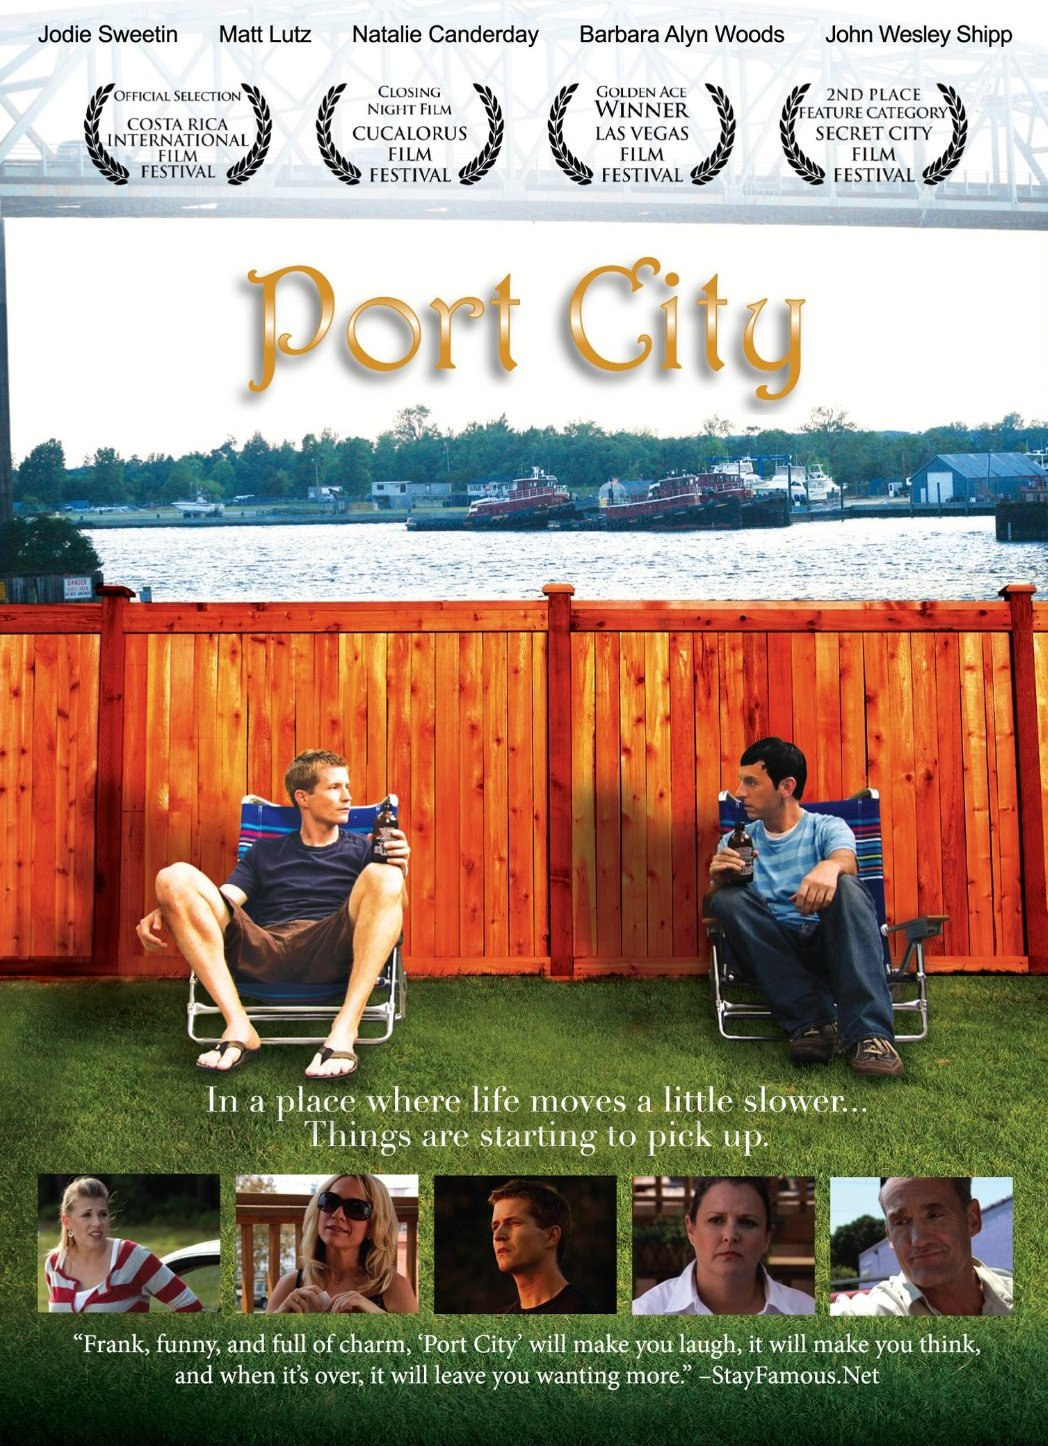 'Port City' released on DVD